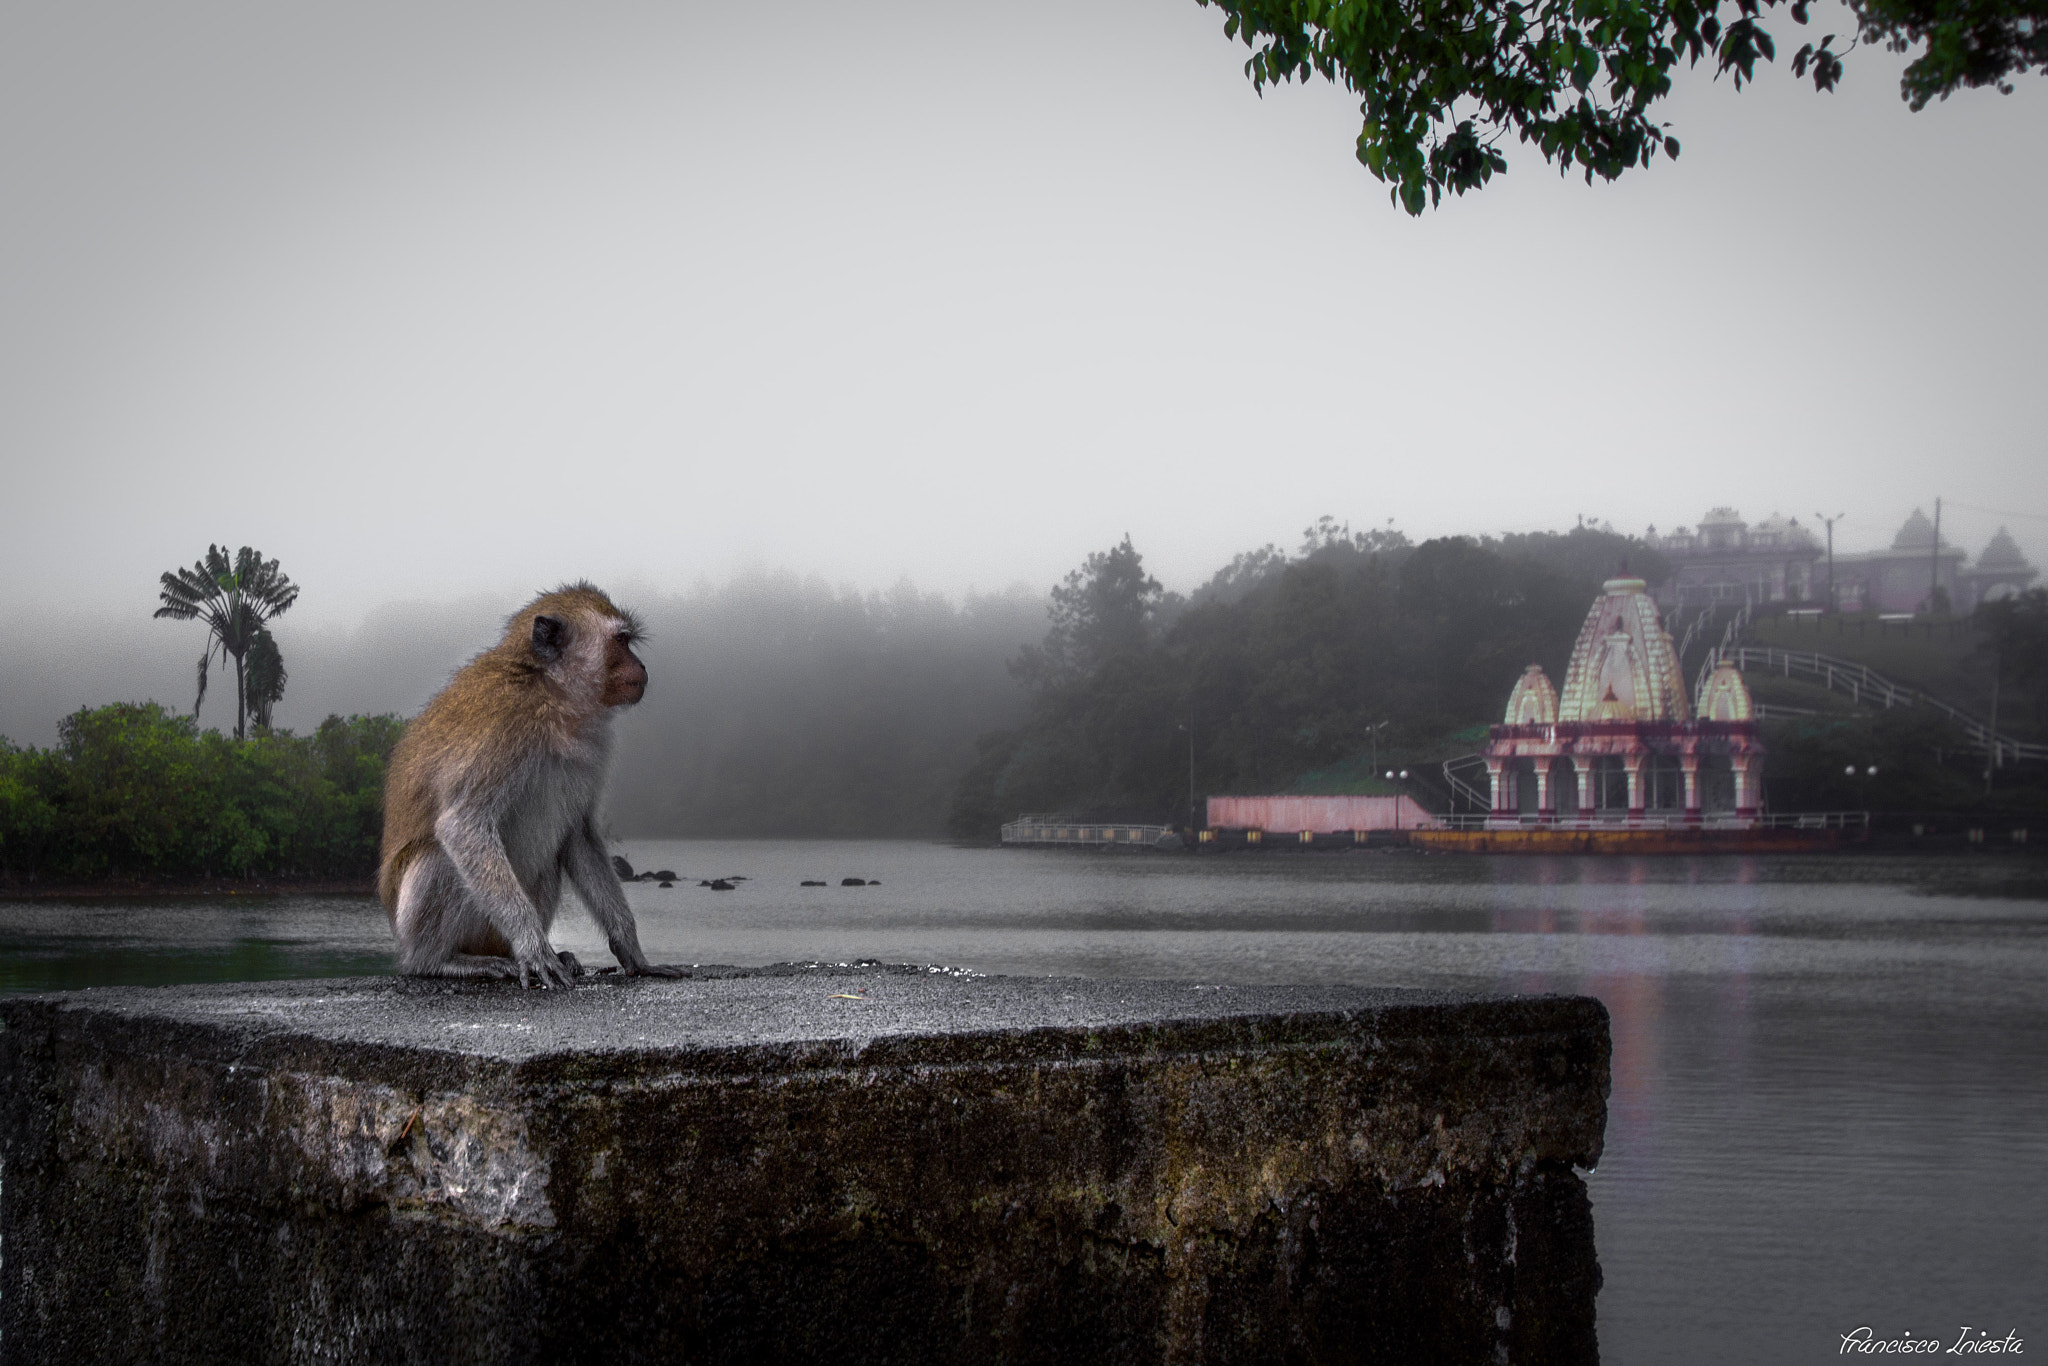 Photograph Monkey by Francisco Iniesta on 500px